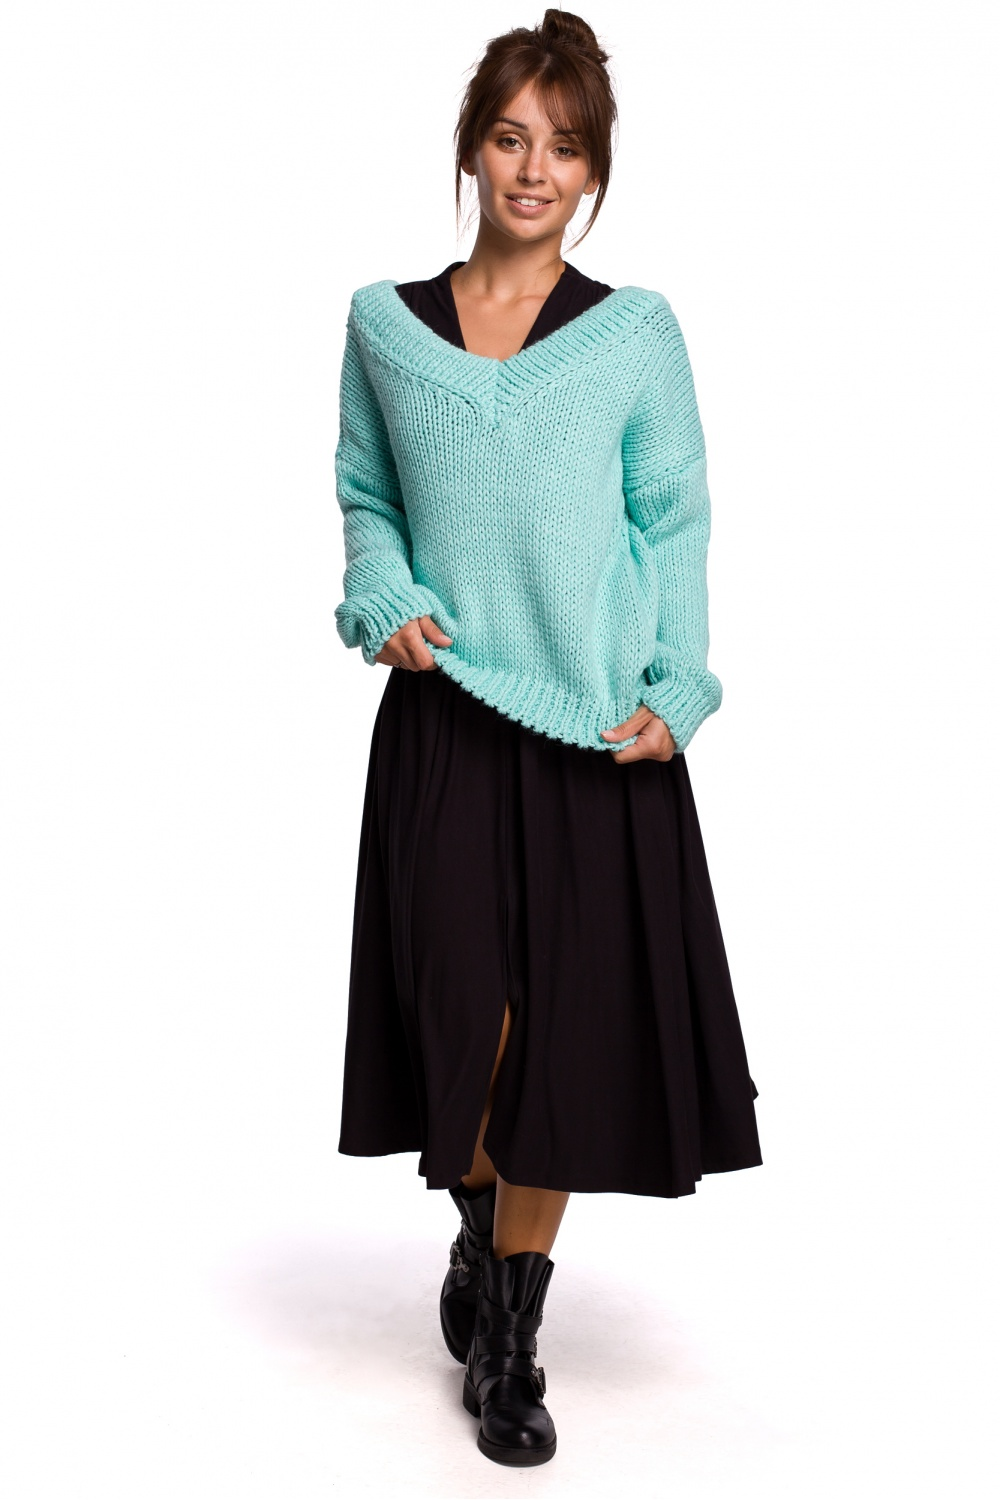 Pulover model 148277 BE Knit